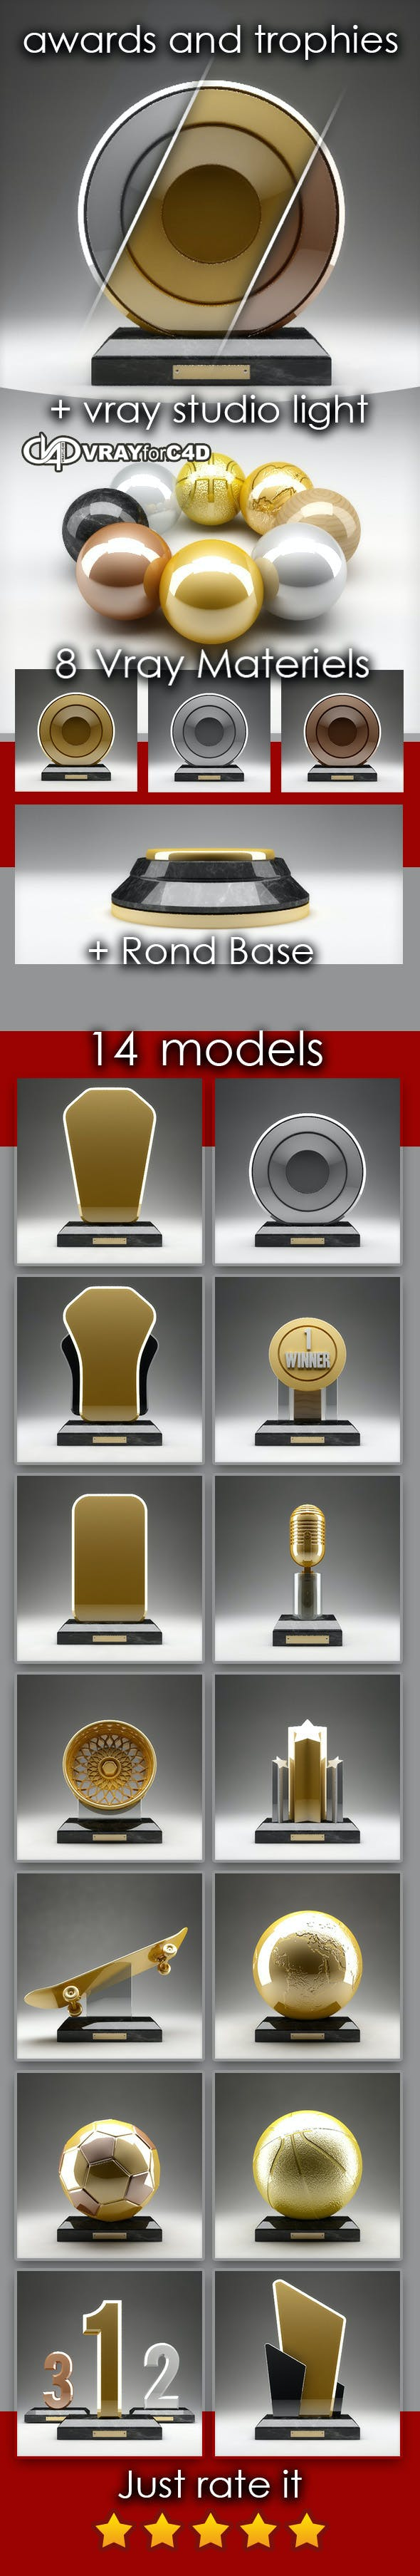 15 awards and trophies in c4d and vray - 3DOcean Item for Sale